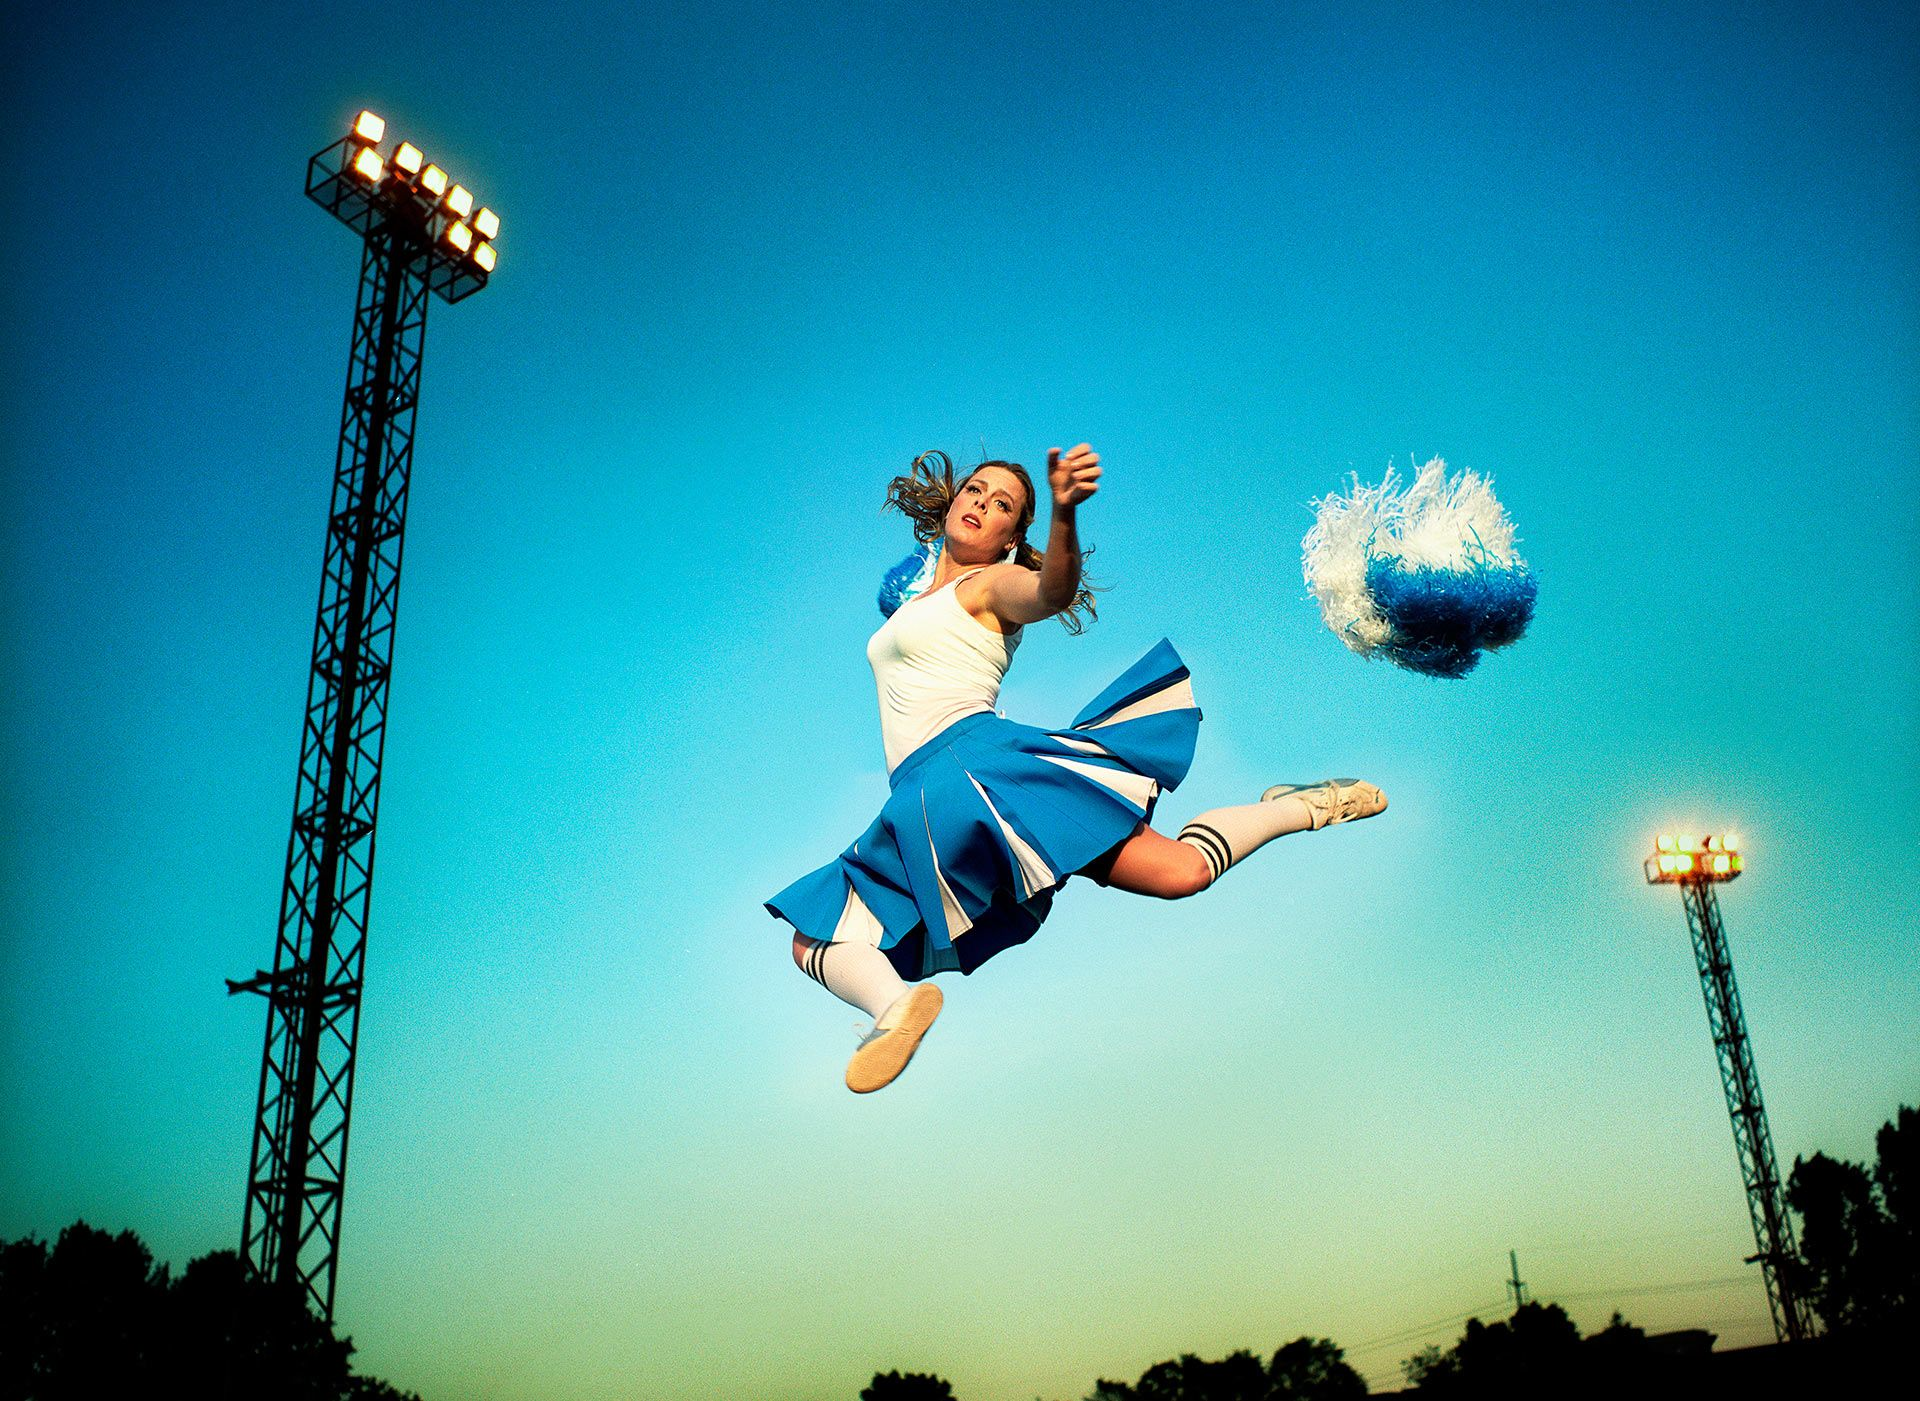 cheerleader jumping in the air for Admissions by Jocelyn Michel